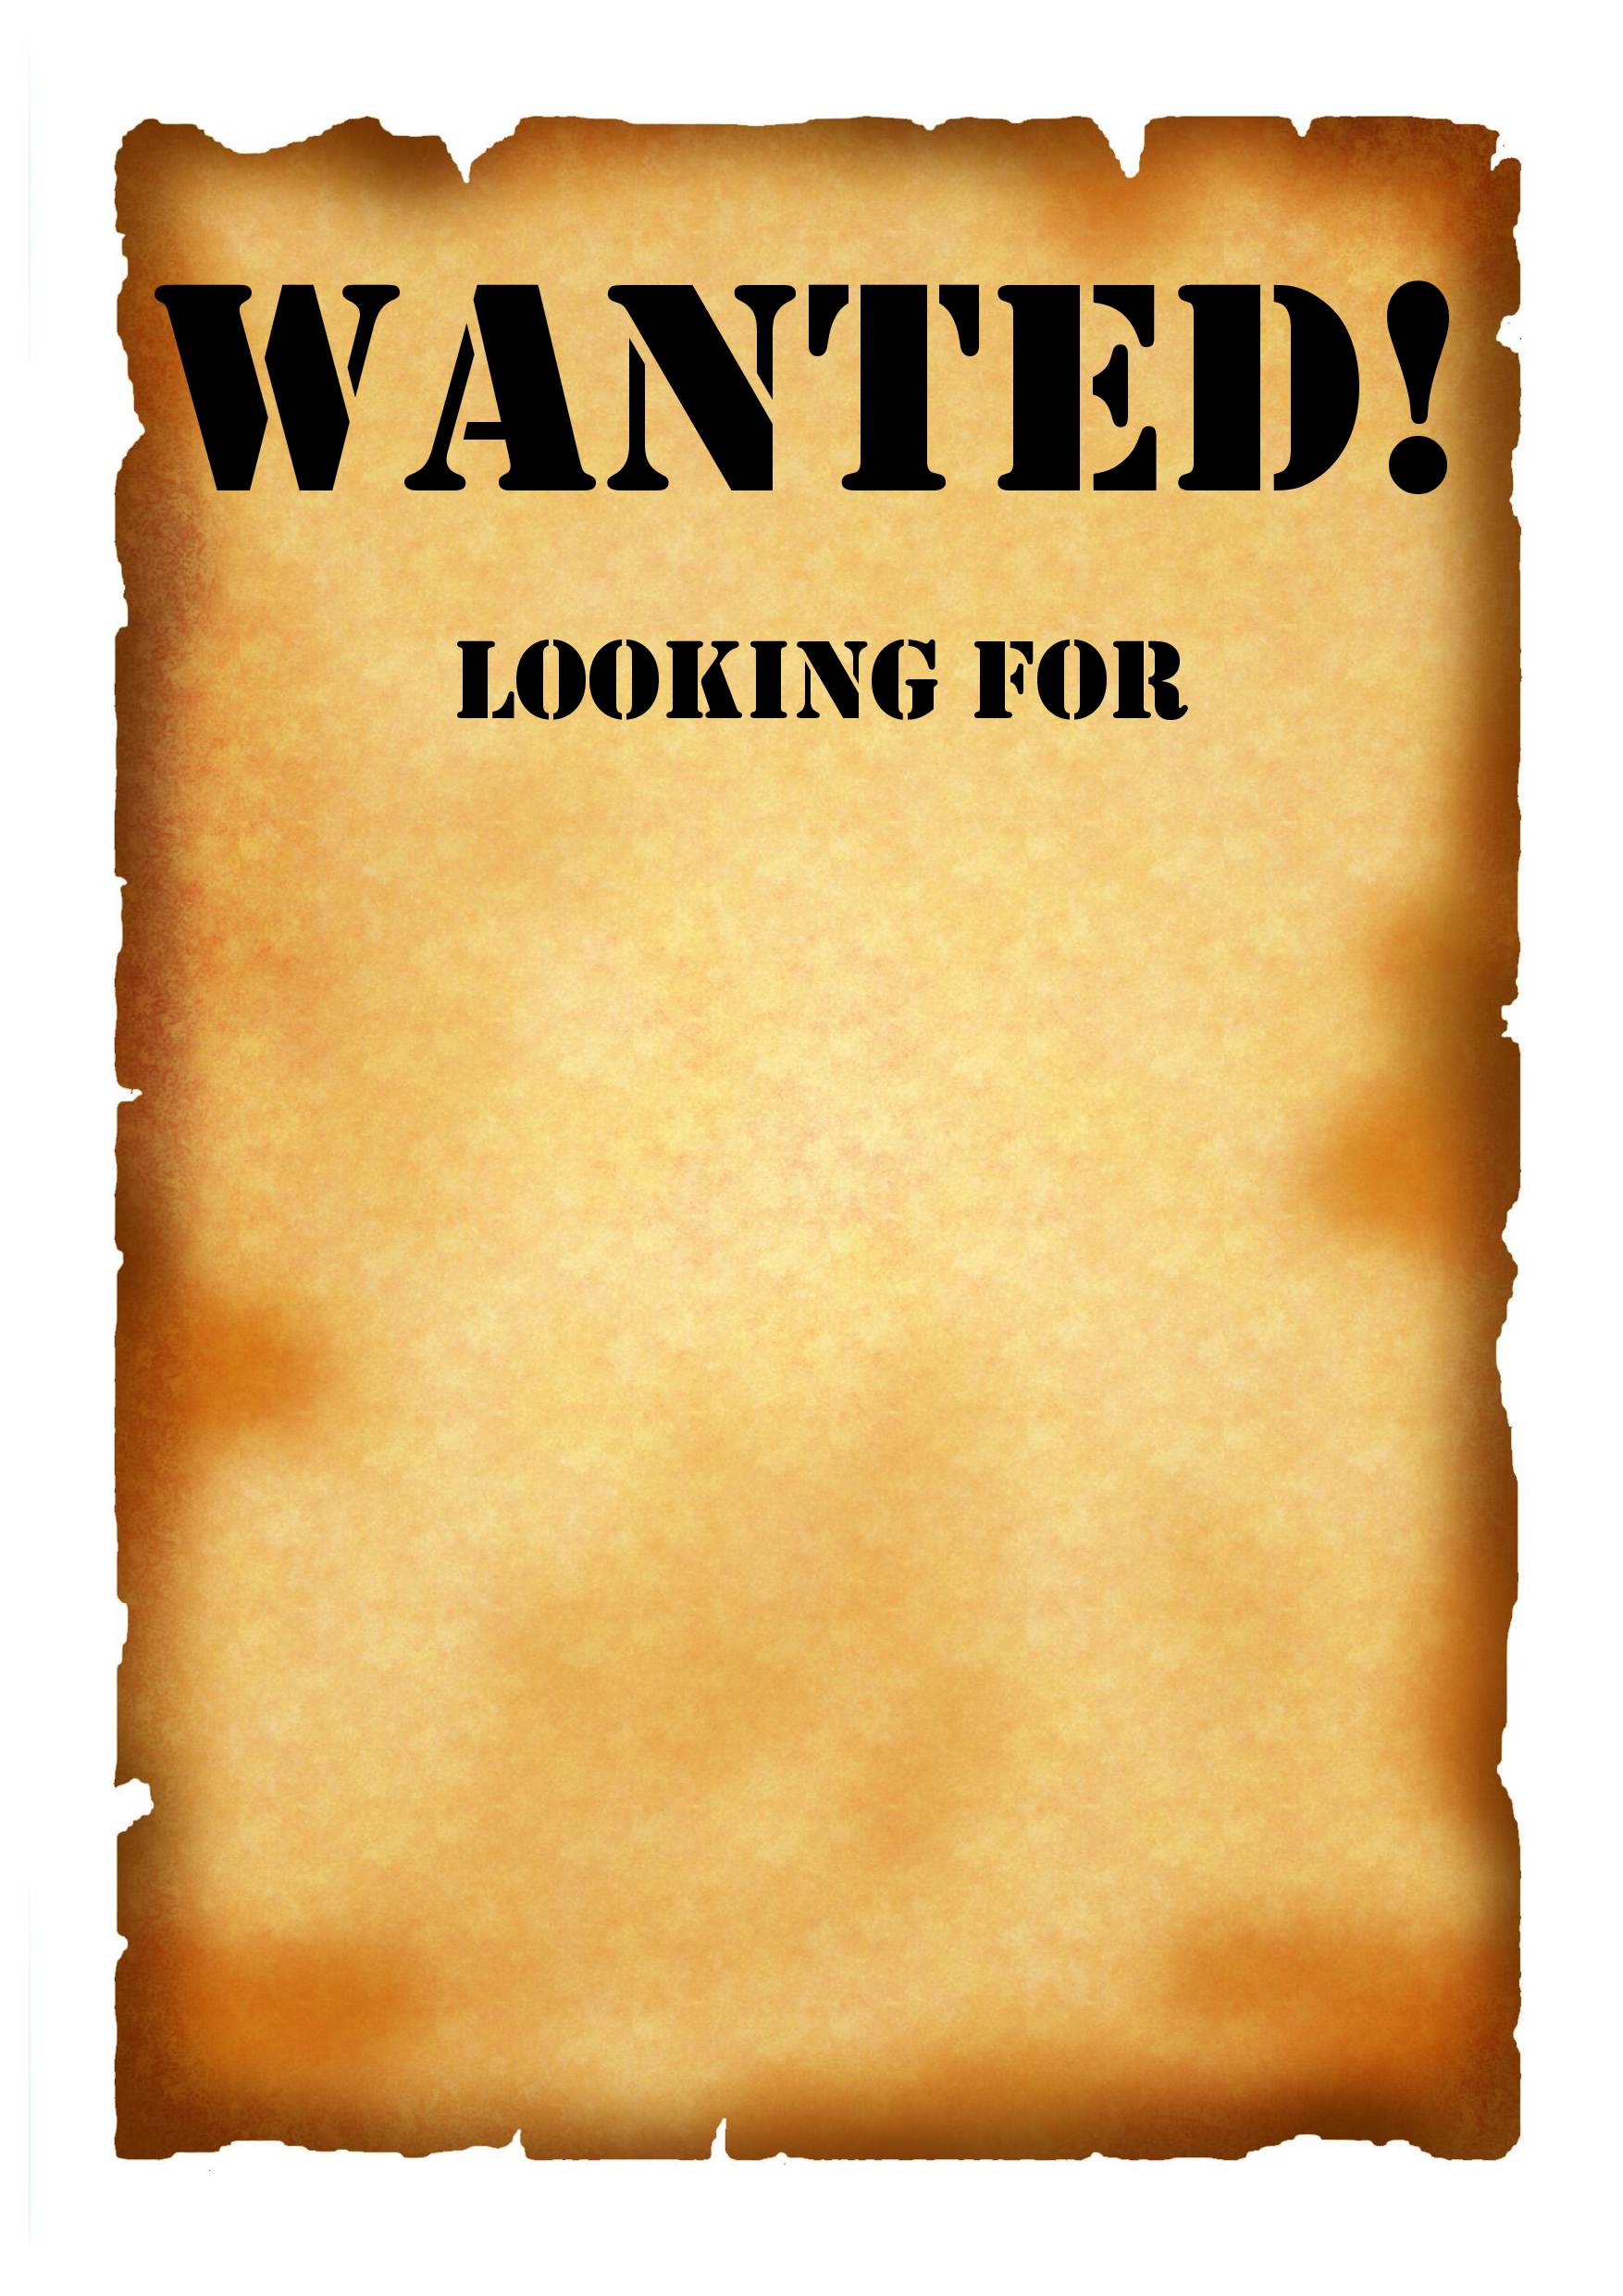 blank western wanted signs template.